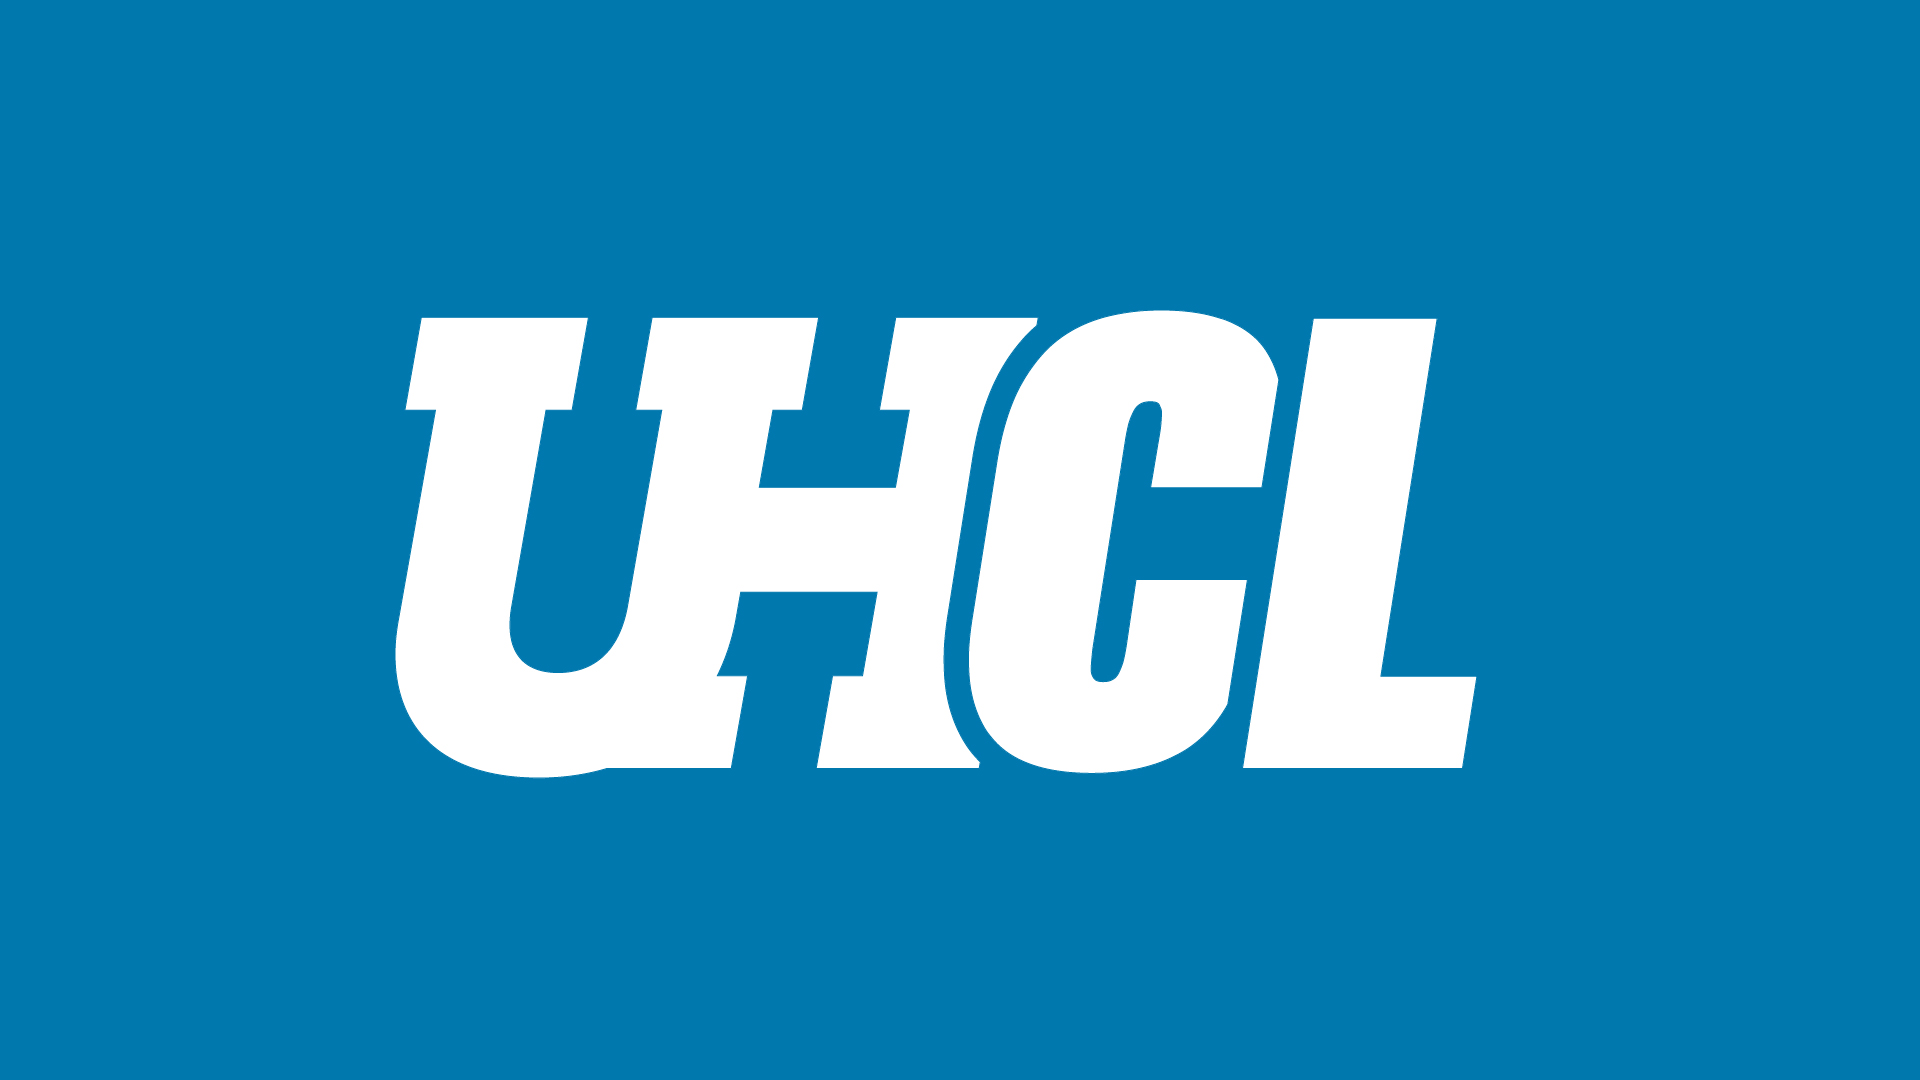 New director seeks to make UHCL the 'go-to' for mental health services